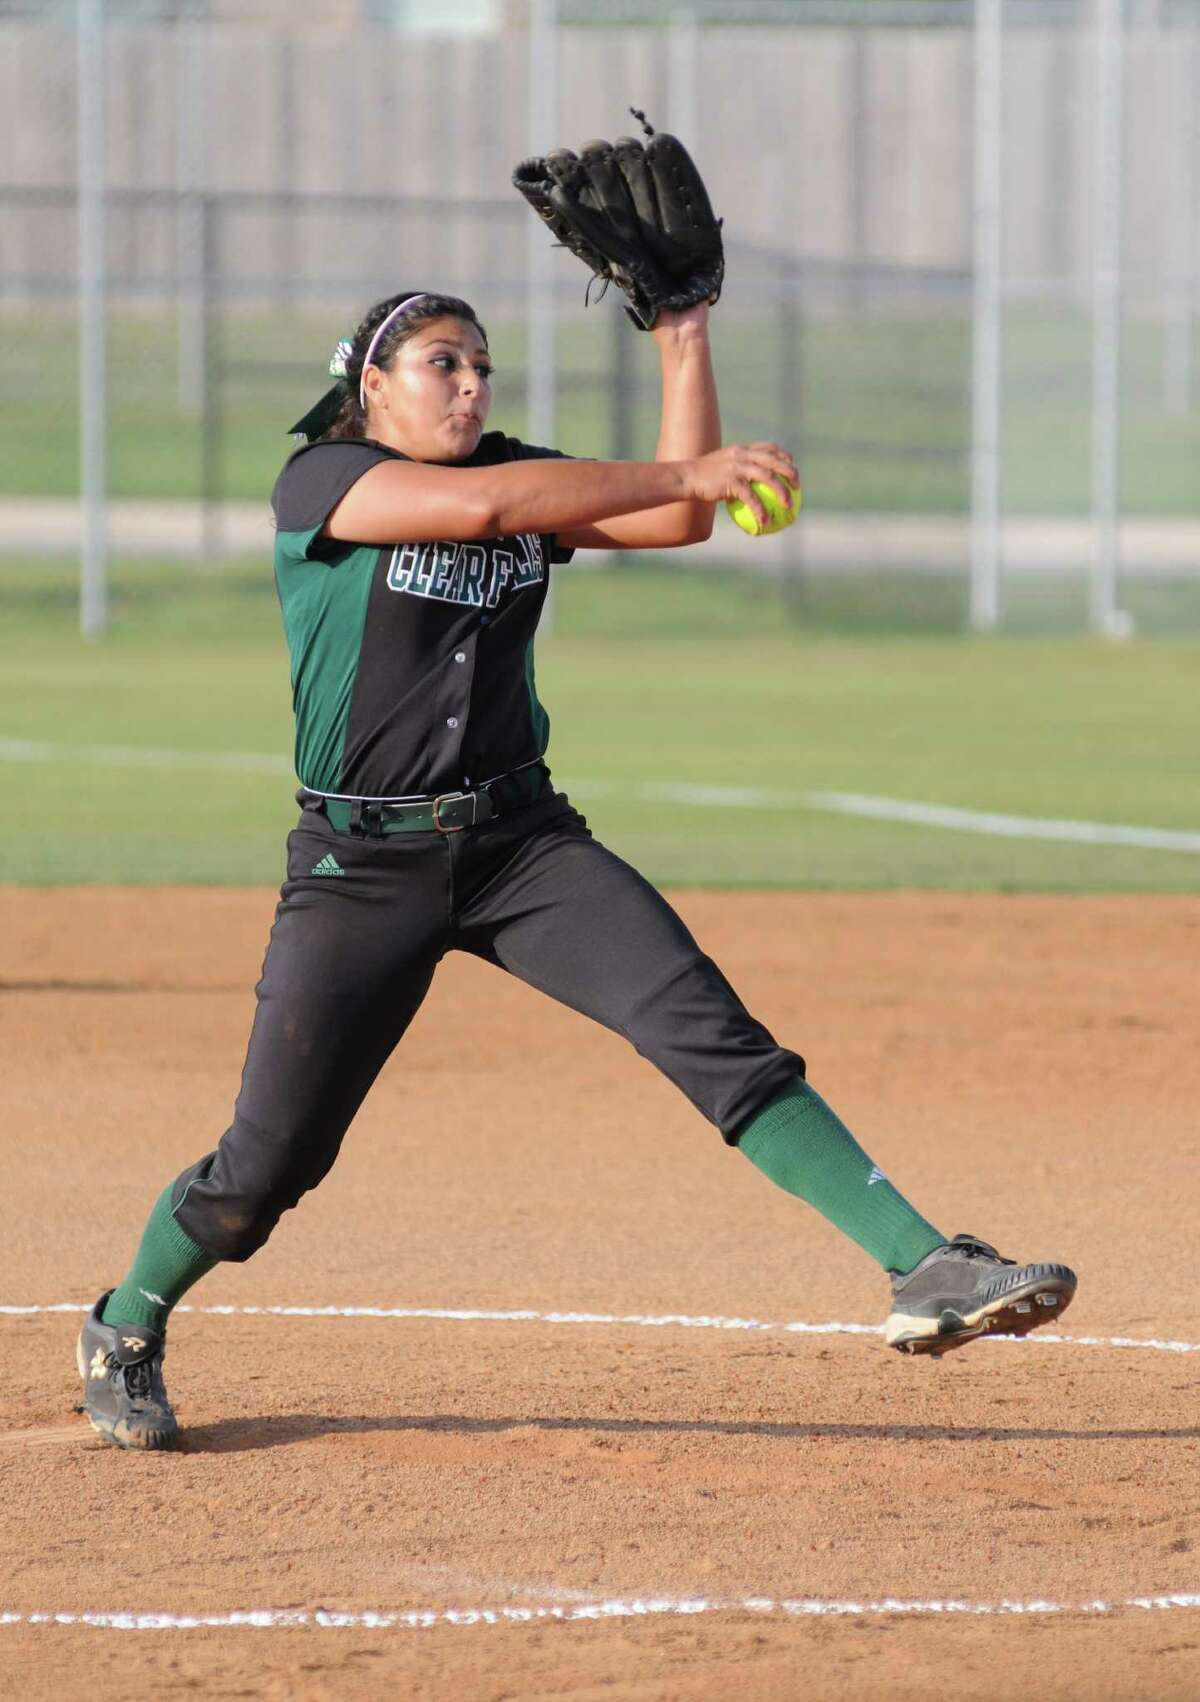 Clear Falls freshman pitcher Misty Muniz during a 14-0 area playoff win against Furr on 5-4-12 in League City. The home win put the Lady Knights into the Class 4A Region III quarterfinals against Manvel.